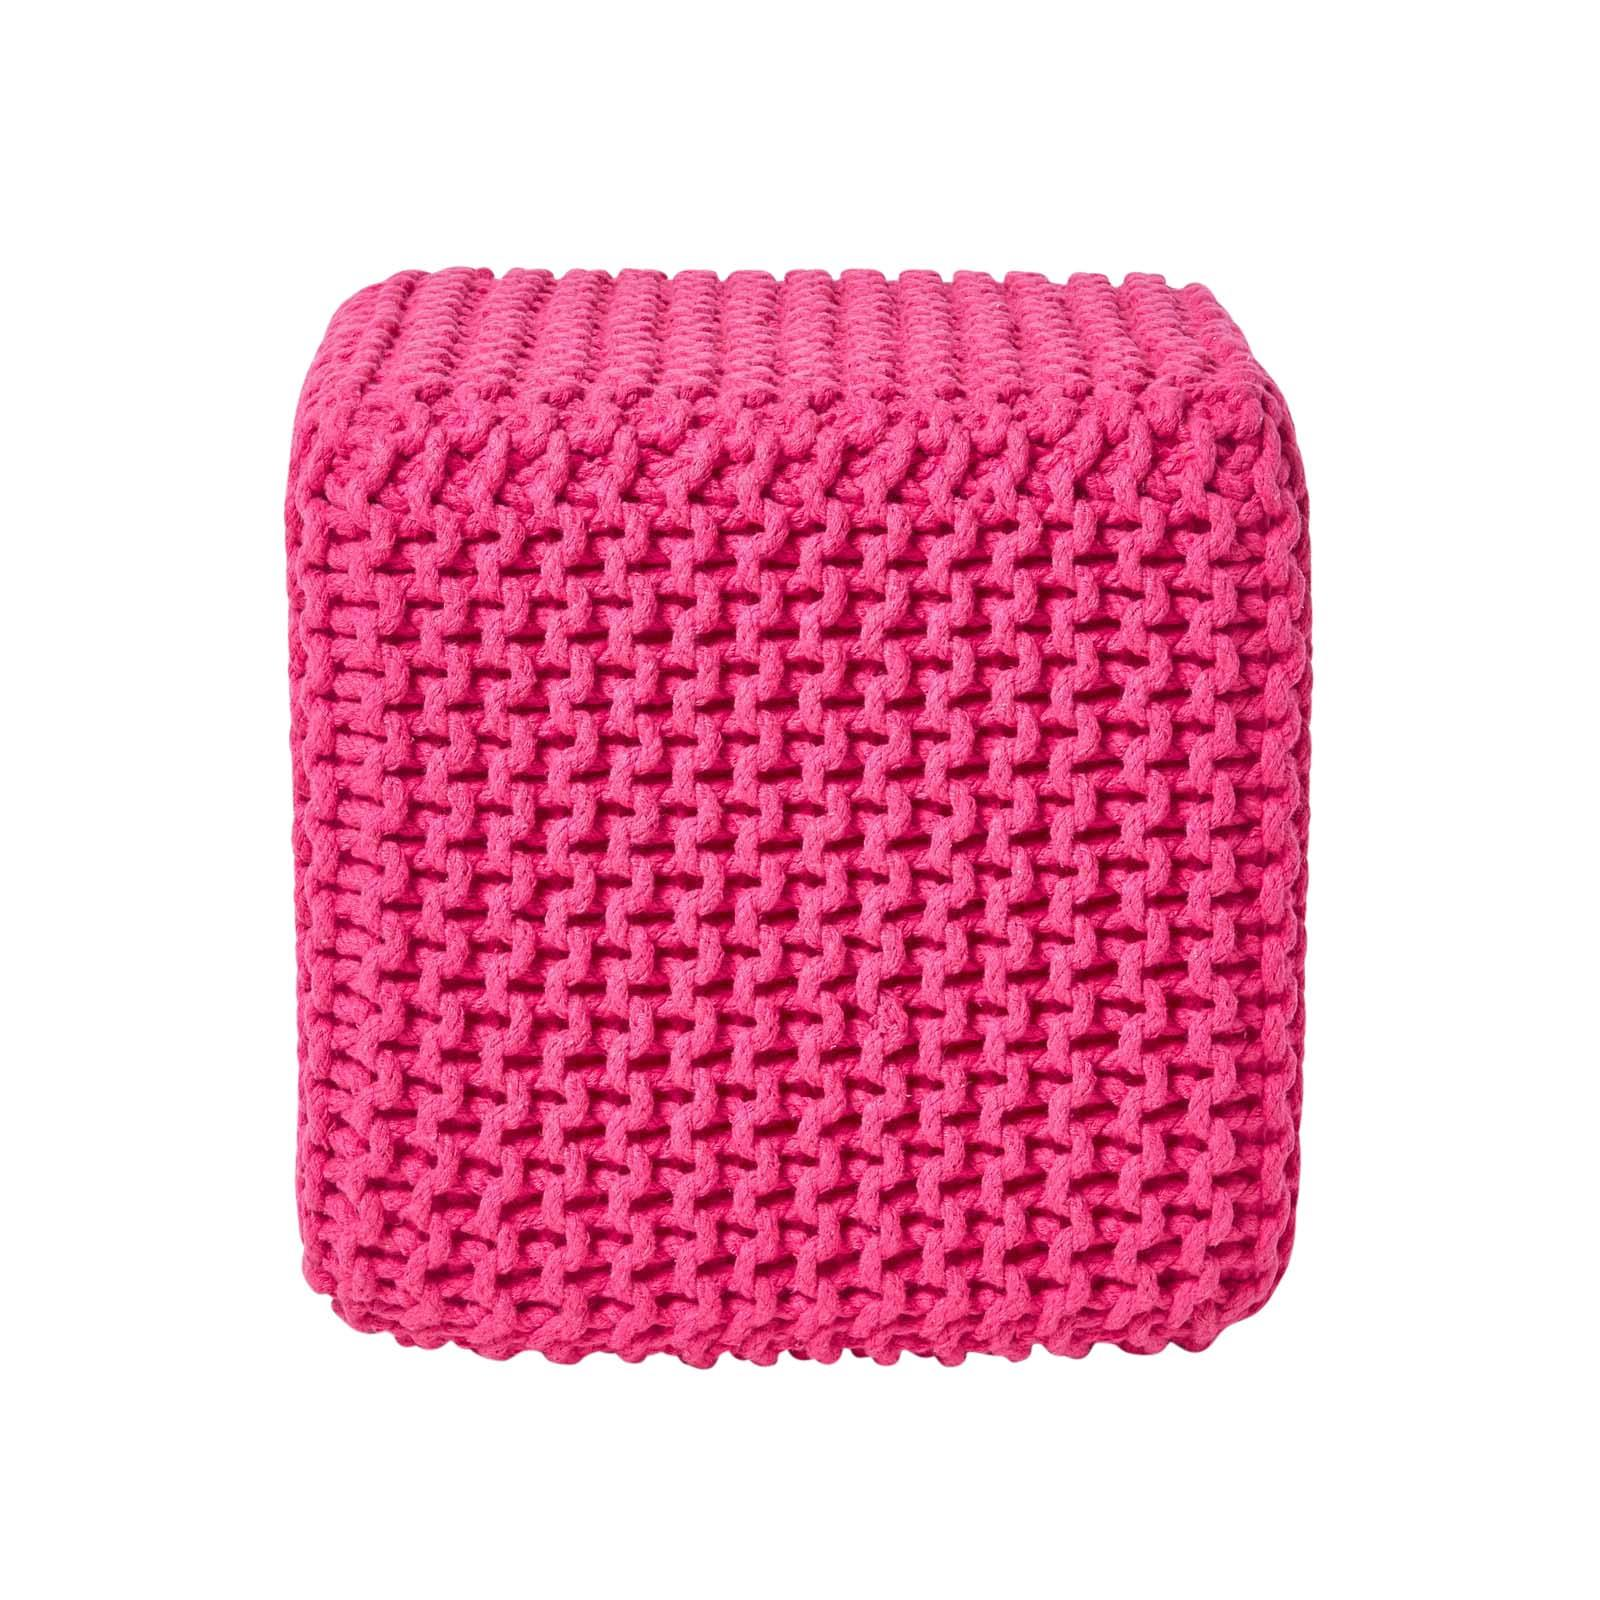 Hand-Knitted-100-Cotton-Pouffes-Round-Sphere-Or-Cube-Square-Chunky-Footstools thumbnail 62